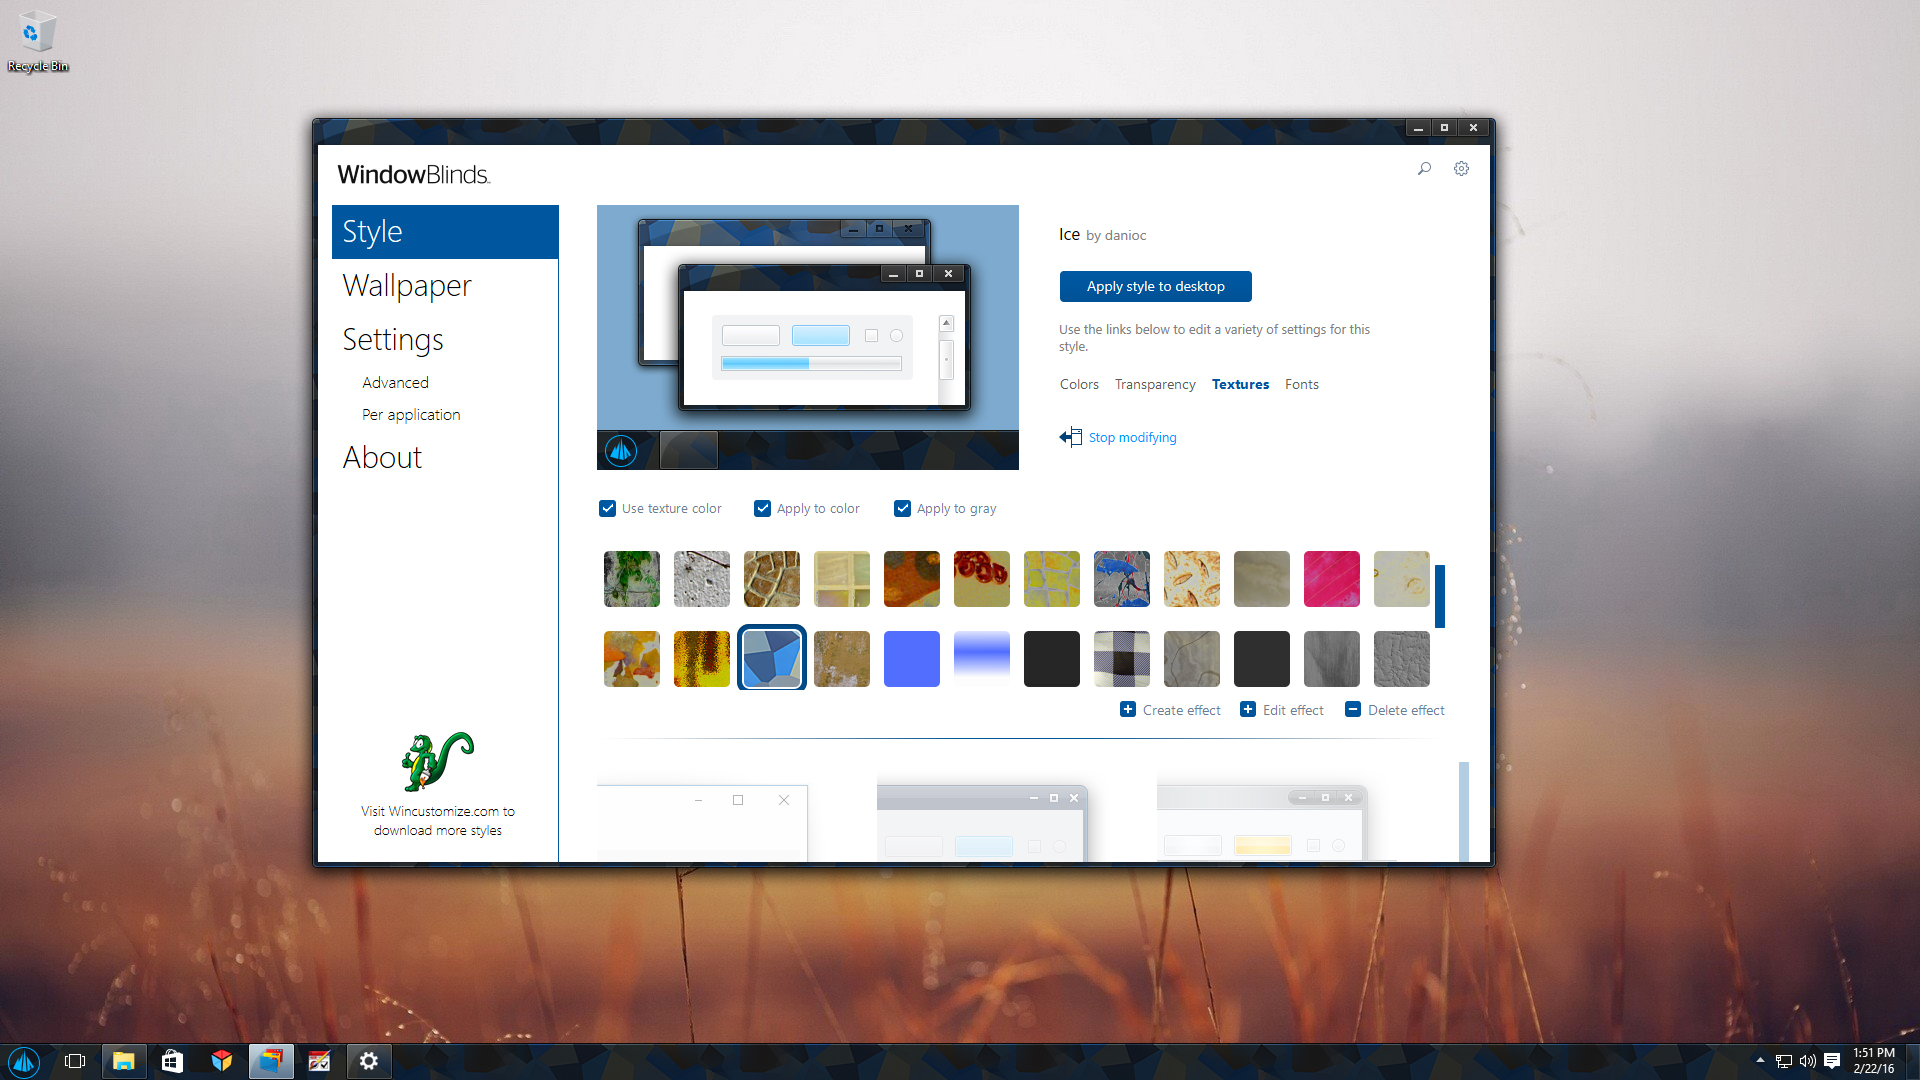 Windowblinds software from stardock for New windows software